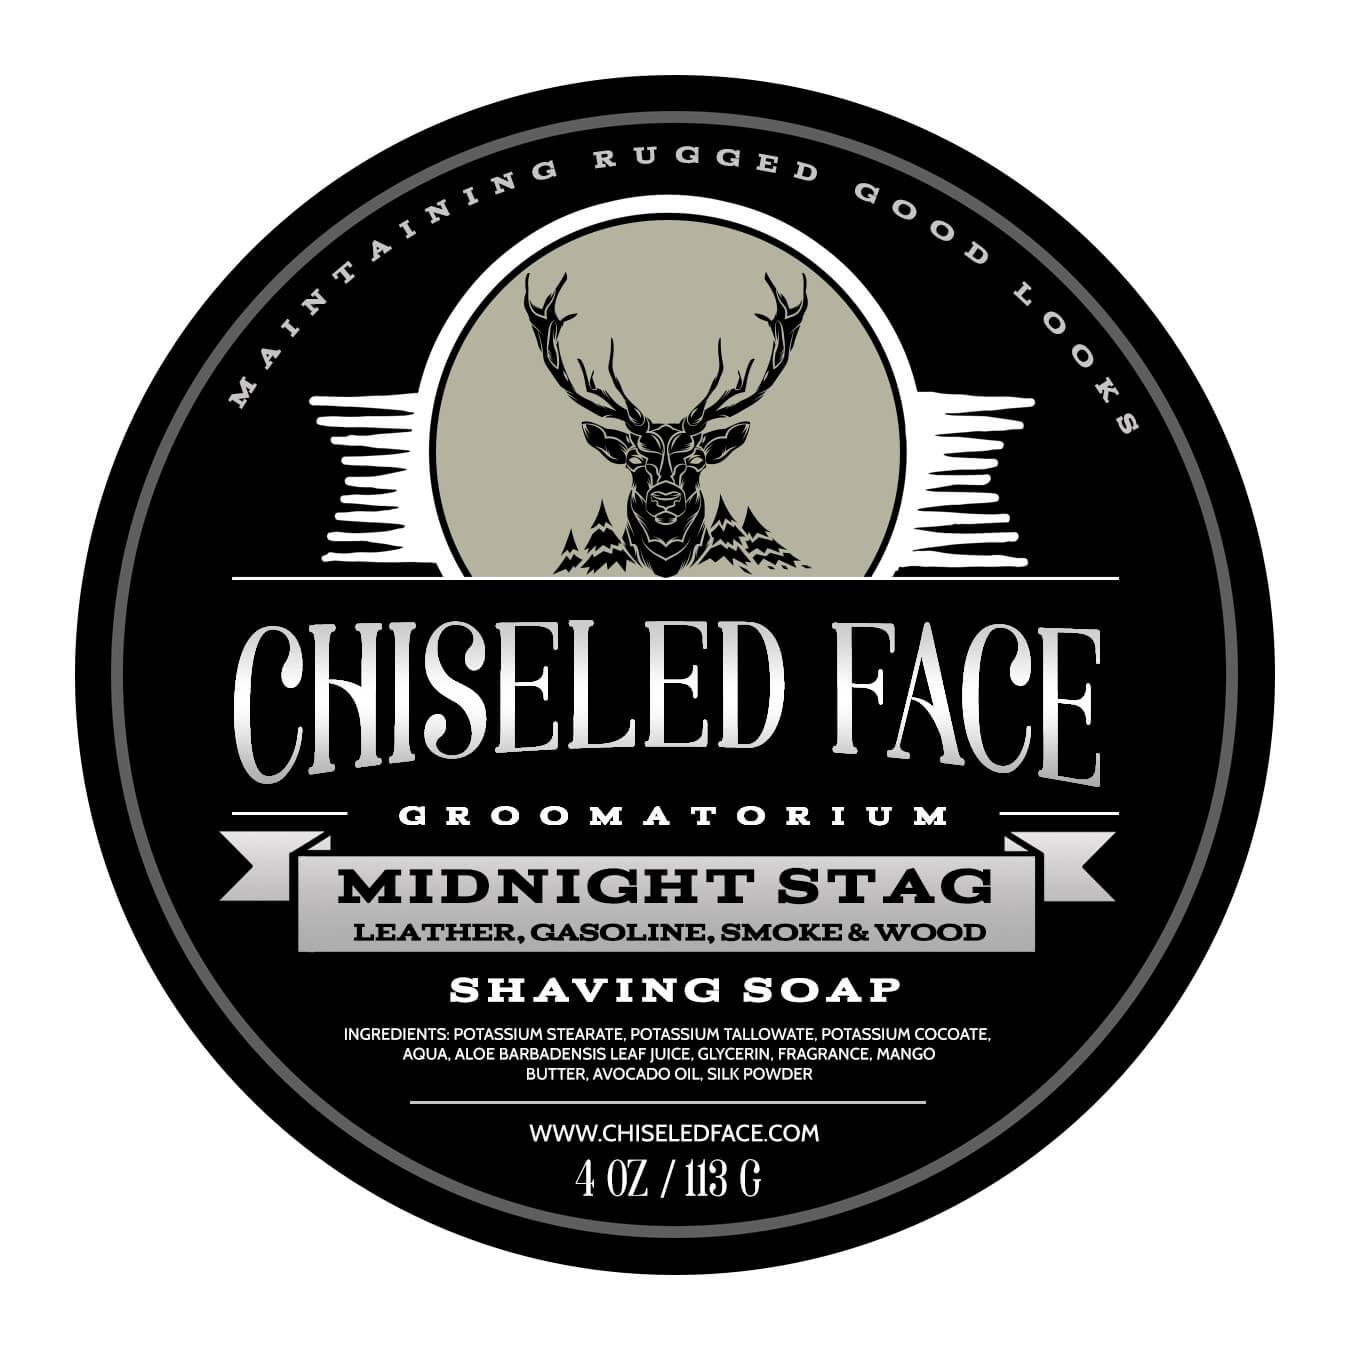 Chiseled Face - Midnight Stag - Soap image